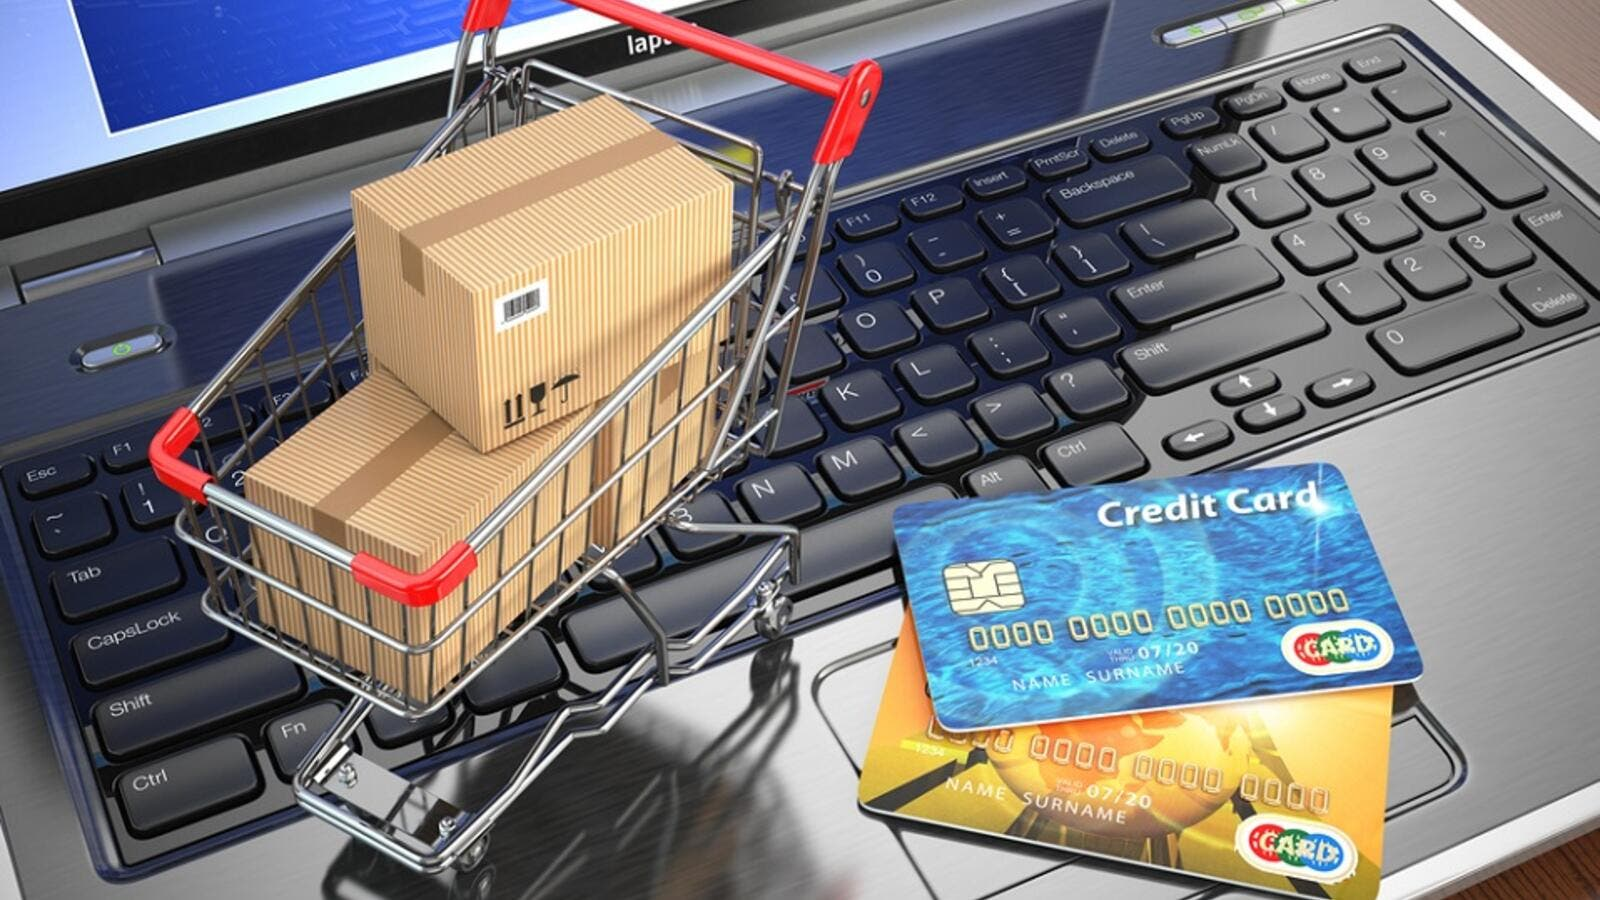 UAE's E-Commerce Market Projected to Grow to $17 8 Billion